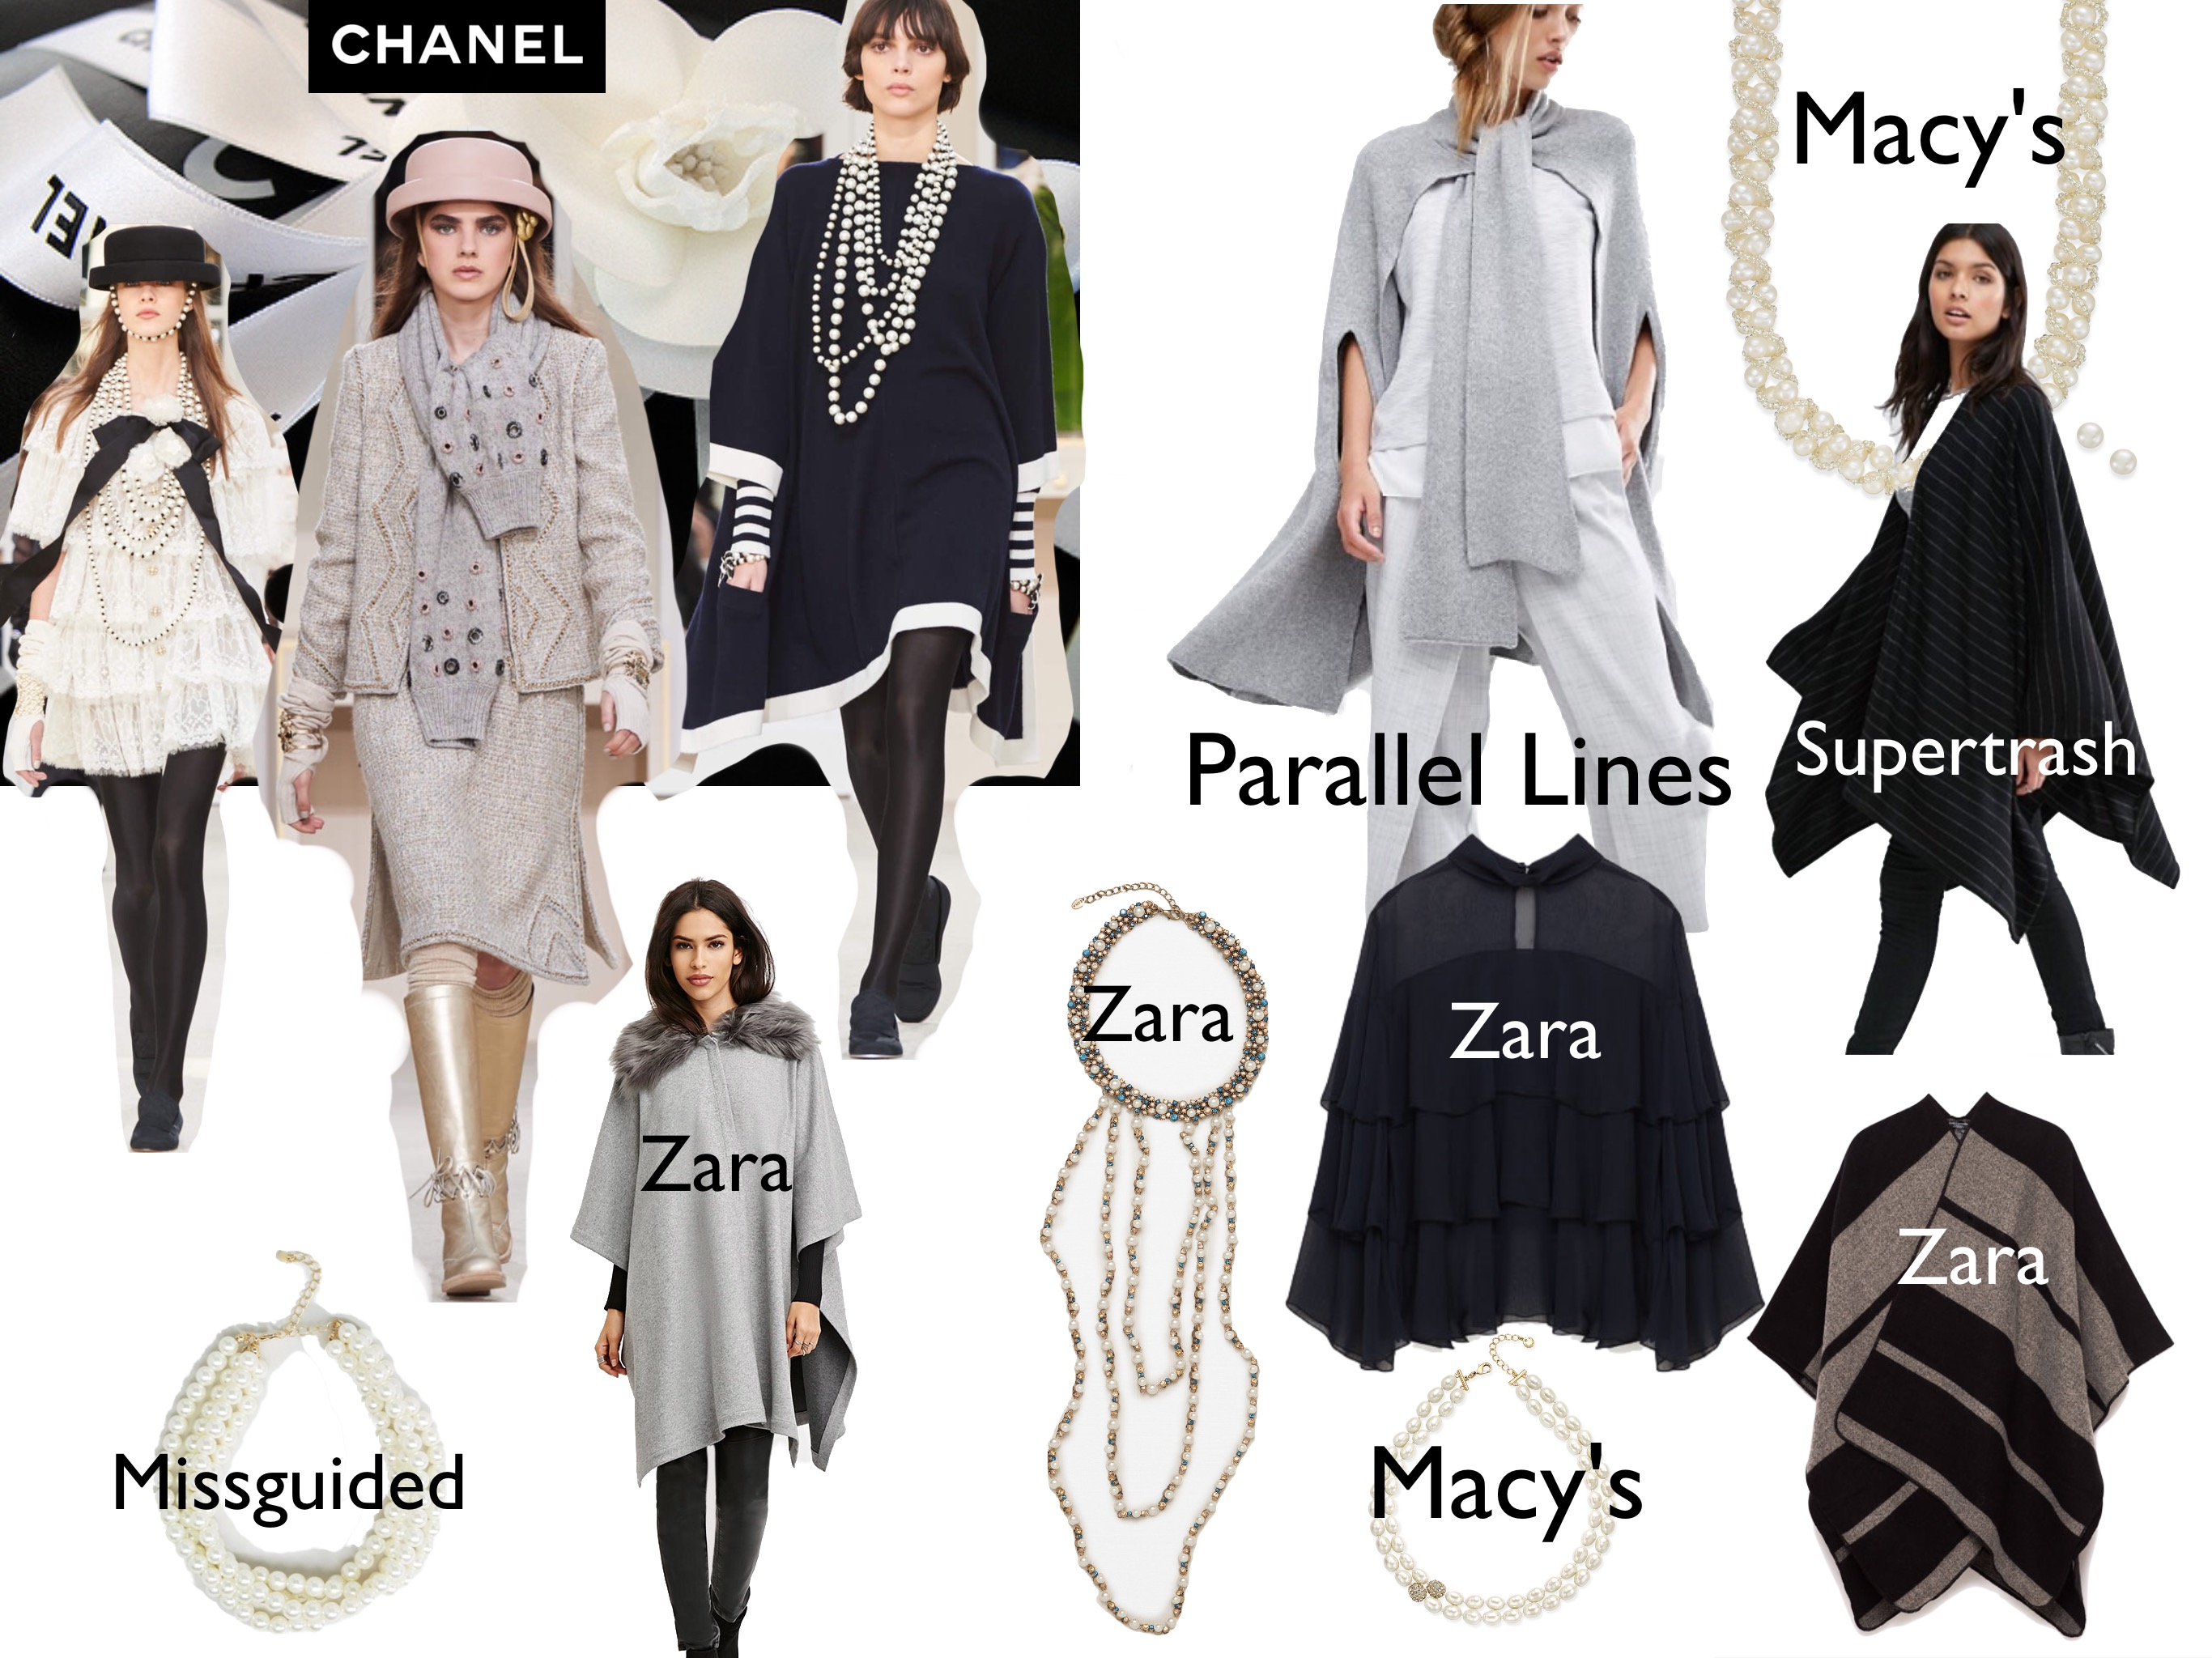 Chanel FW16 affordable looks